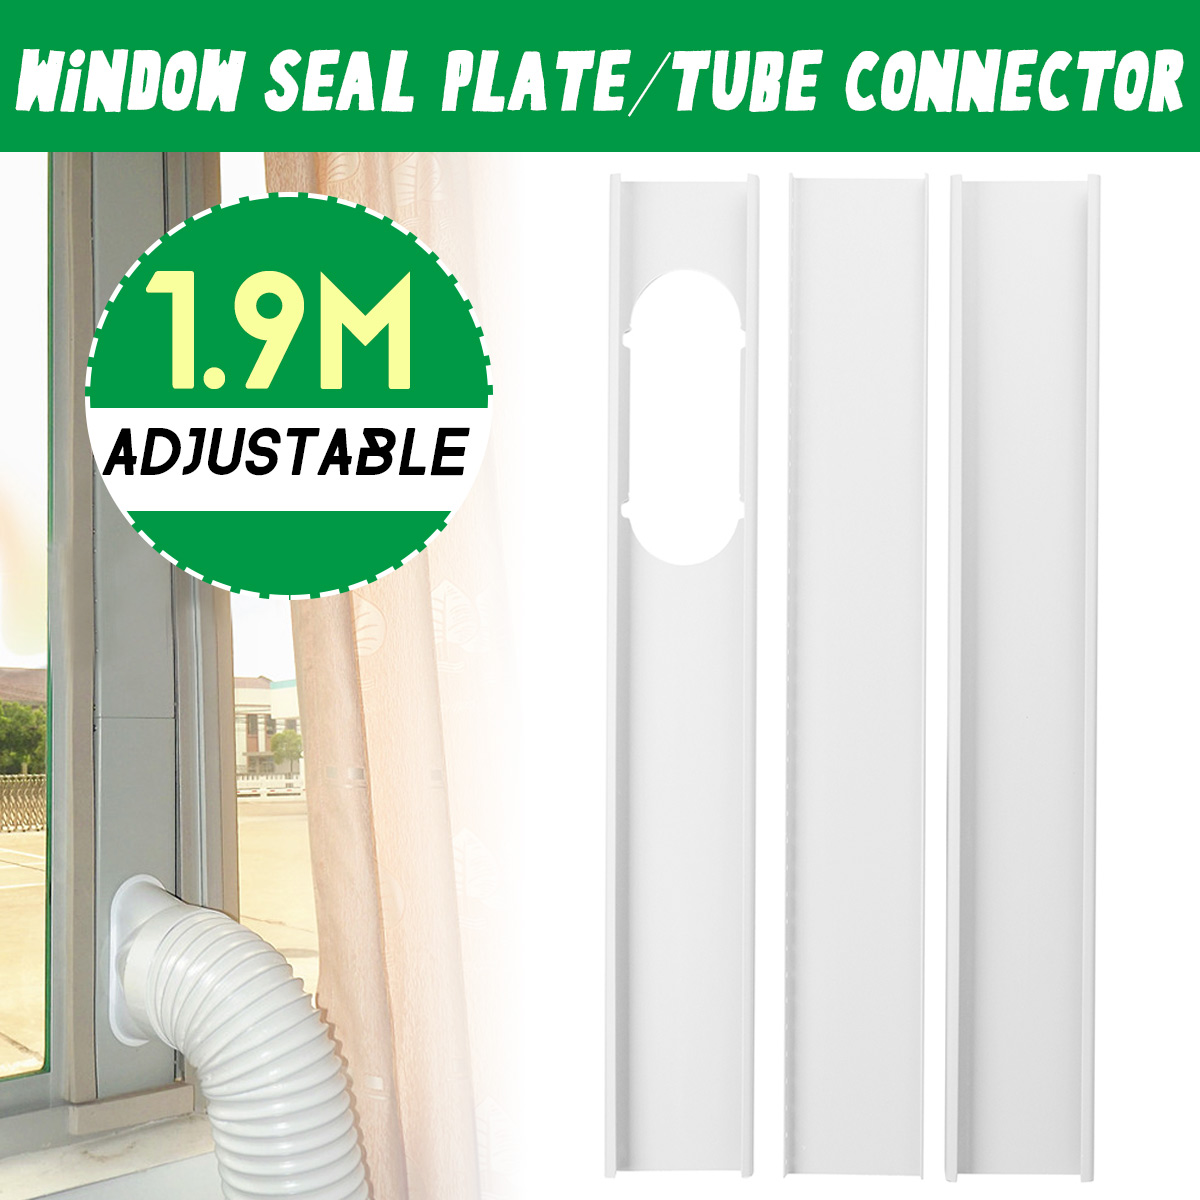 3Pcs 1.9M Adjust Air Conditioner Window Vent Plate Air Conditioner Exhaust Hose Tube Connector